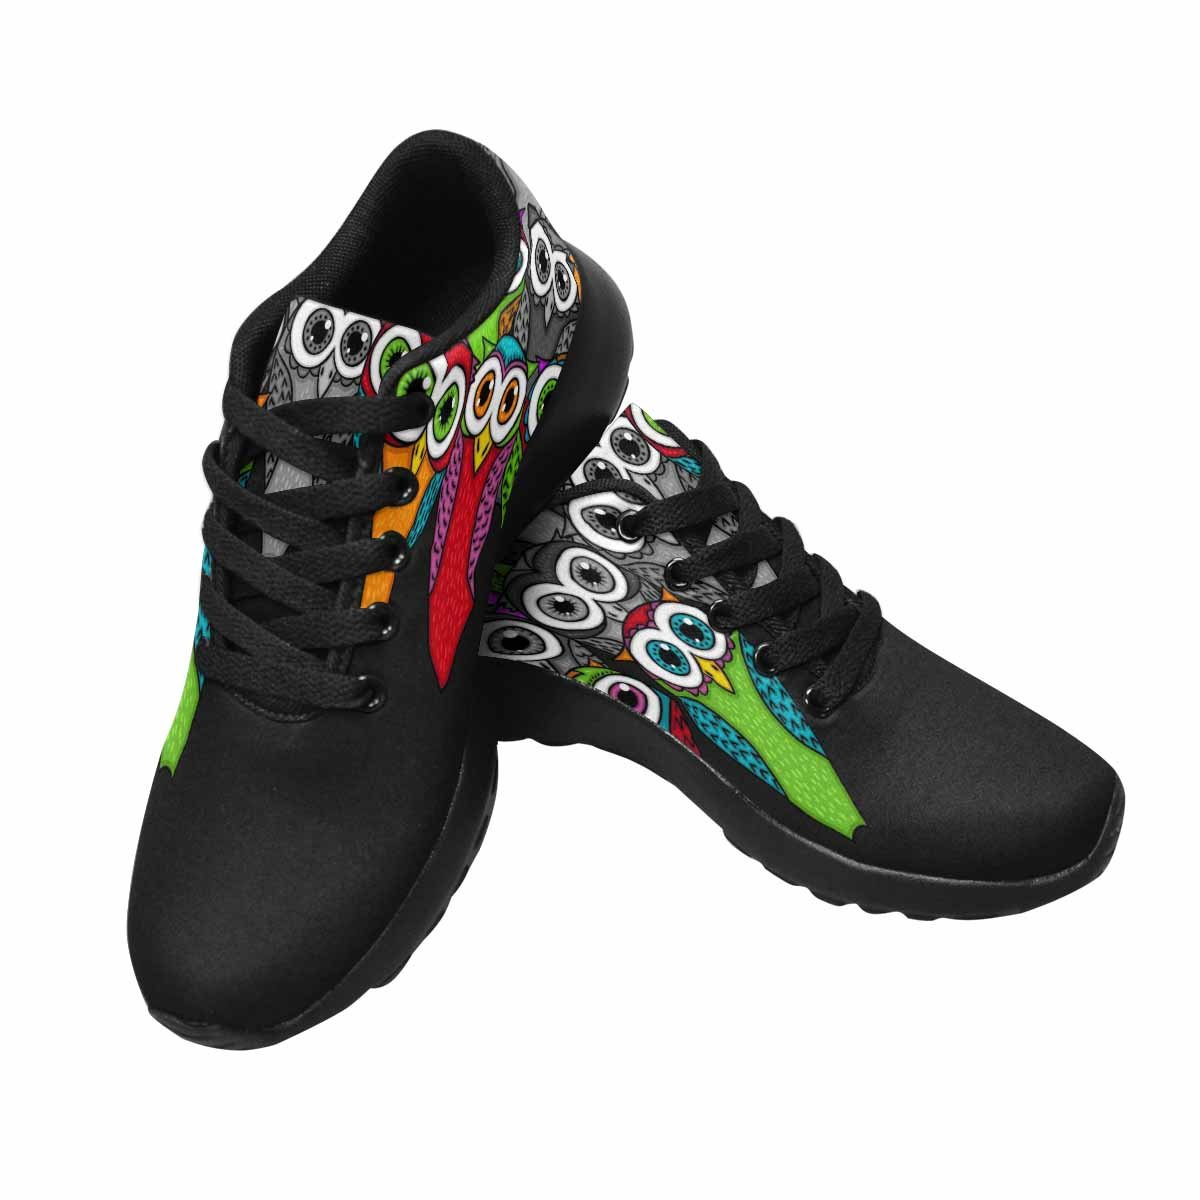 InterestPrint Women's Trail Running Shoes Athletic Sneakers Owl Pattern, Cartoon Style US 12